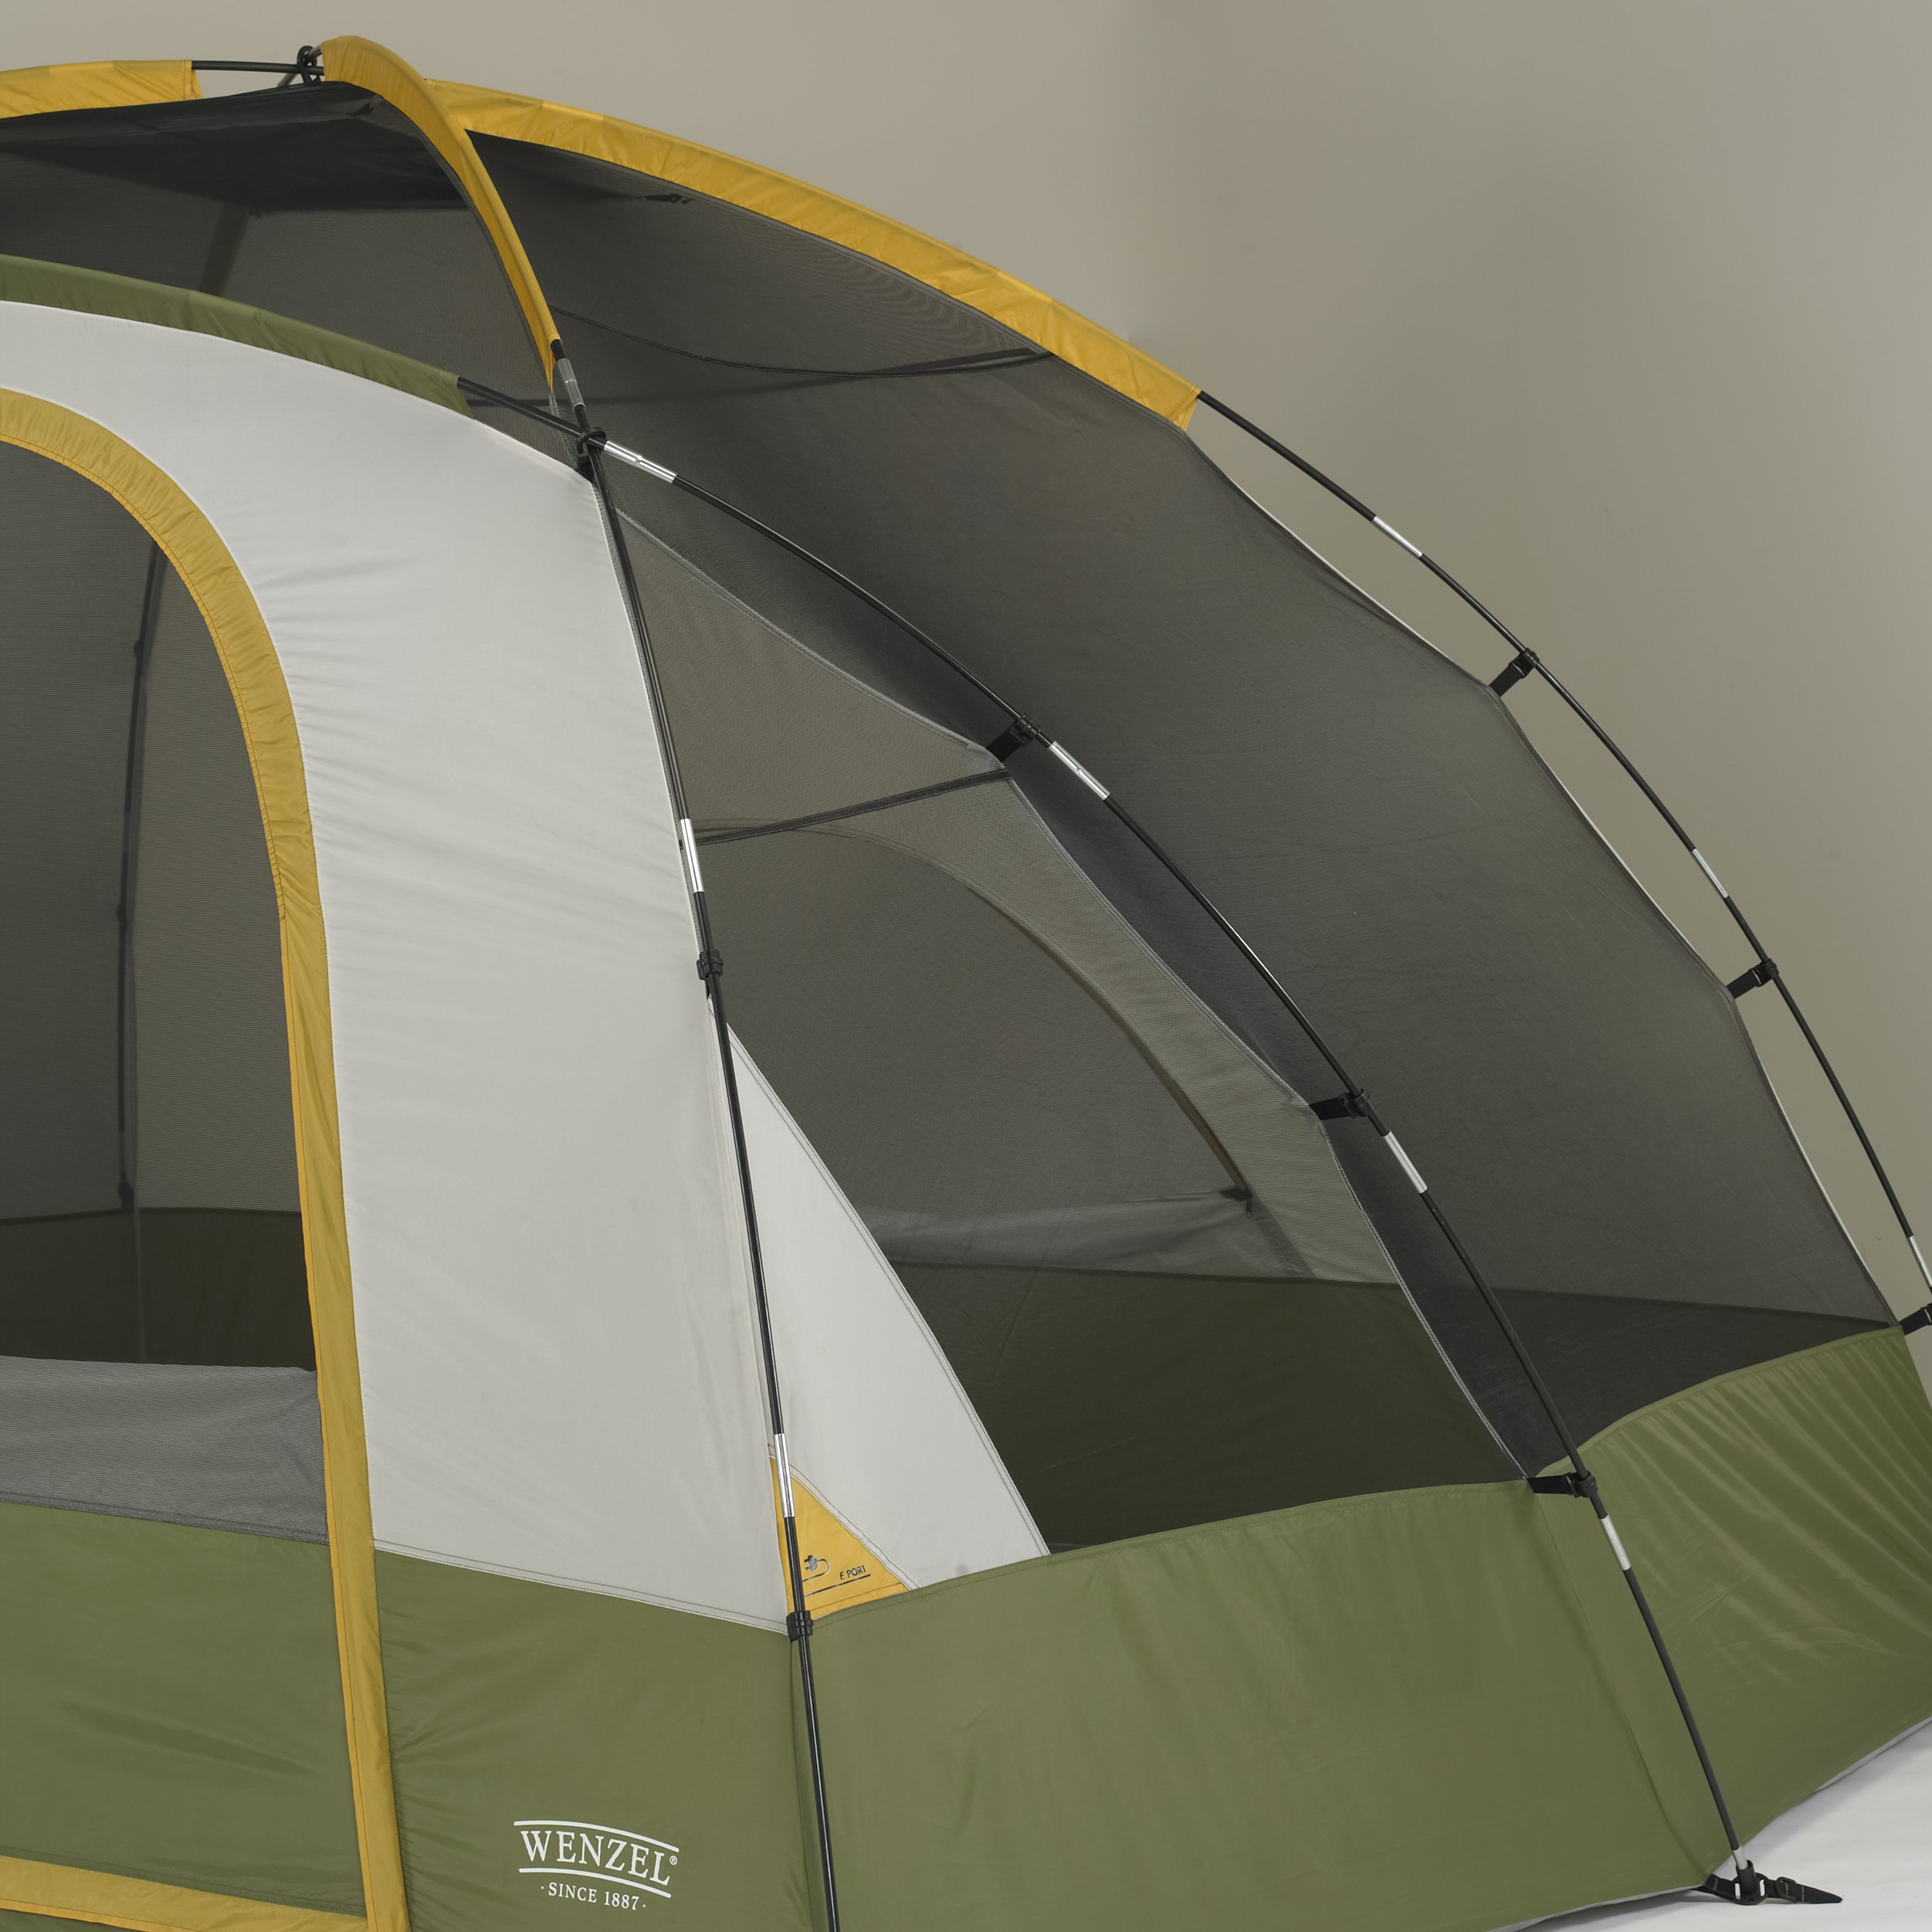 Wenzel Evergreen Tent - 6 Person by Wenzel (Image #4)